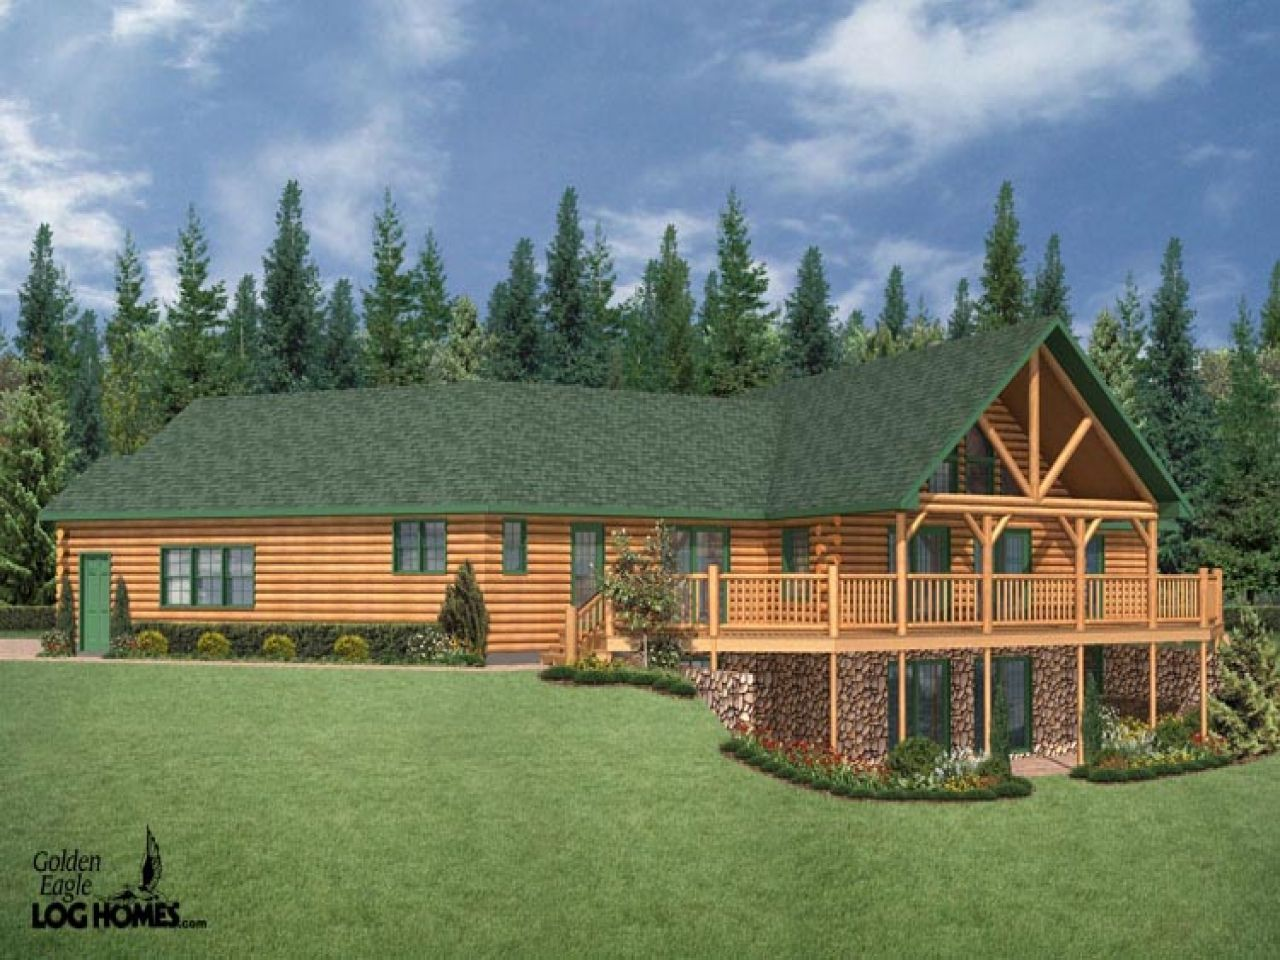 style log homes cabin ranch home plans modular prices   Home Design